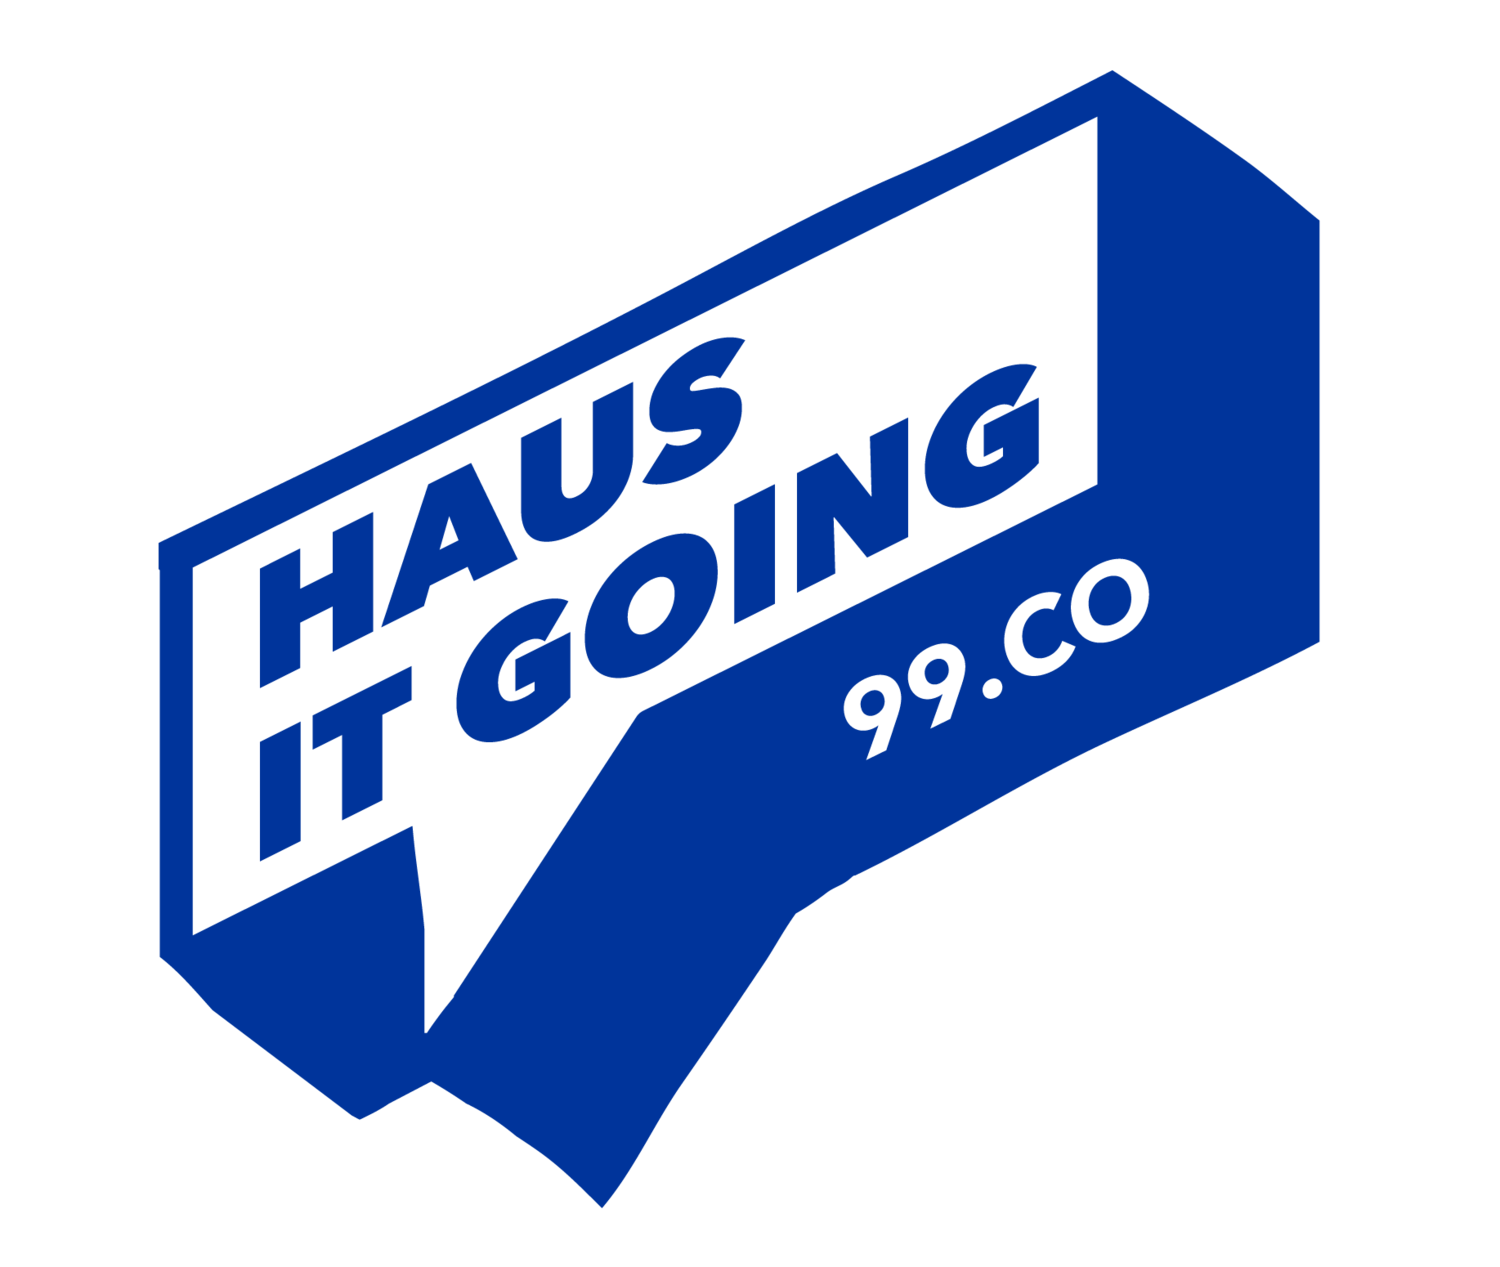 99.co Haus It Going